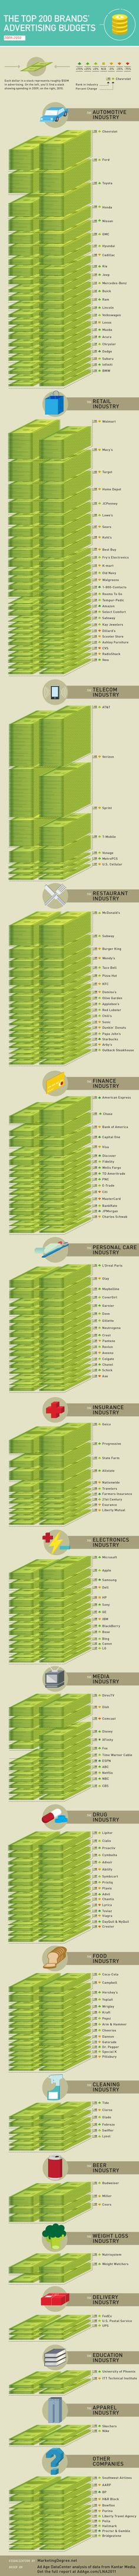 What Do The Top 200 Brands and Their Industries Spend On Advertising? #infographic